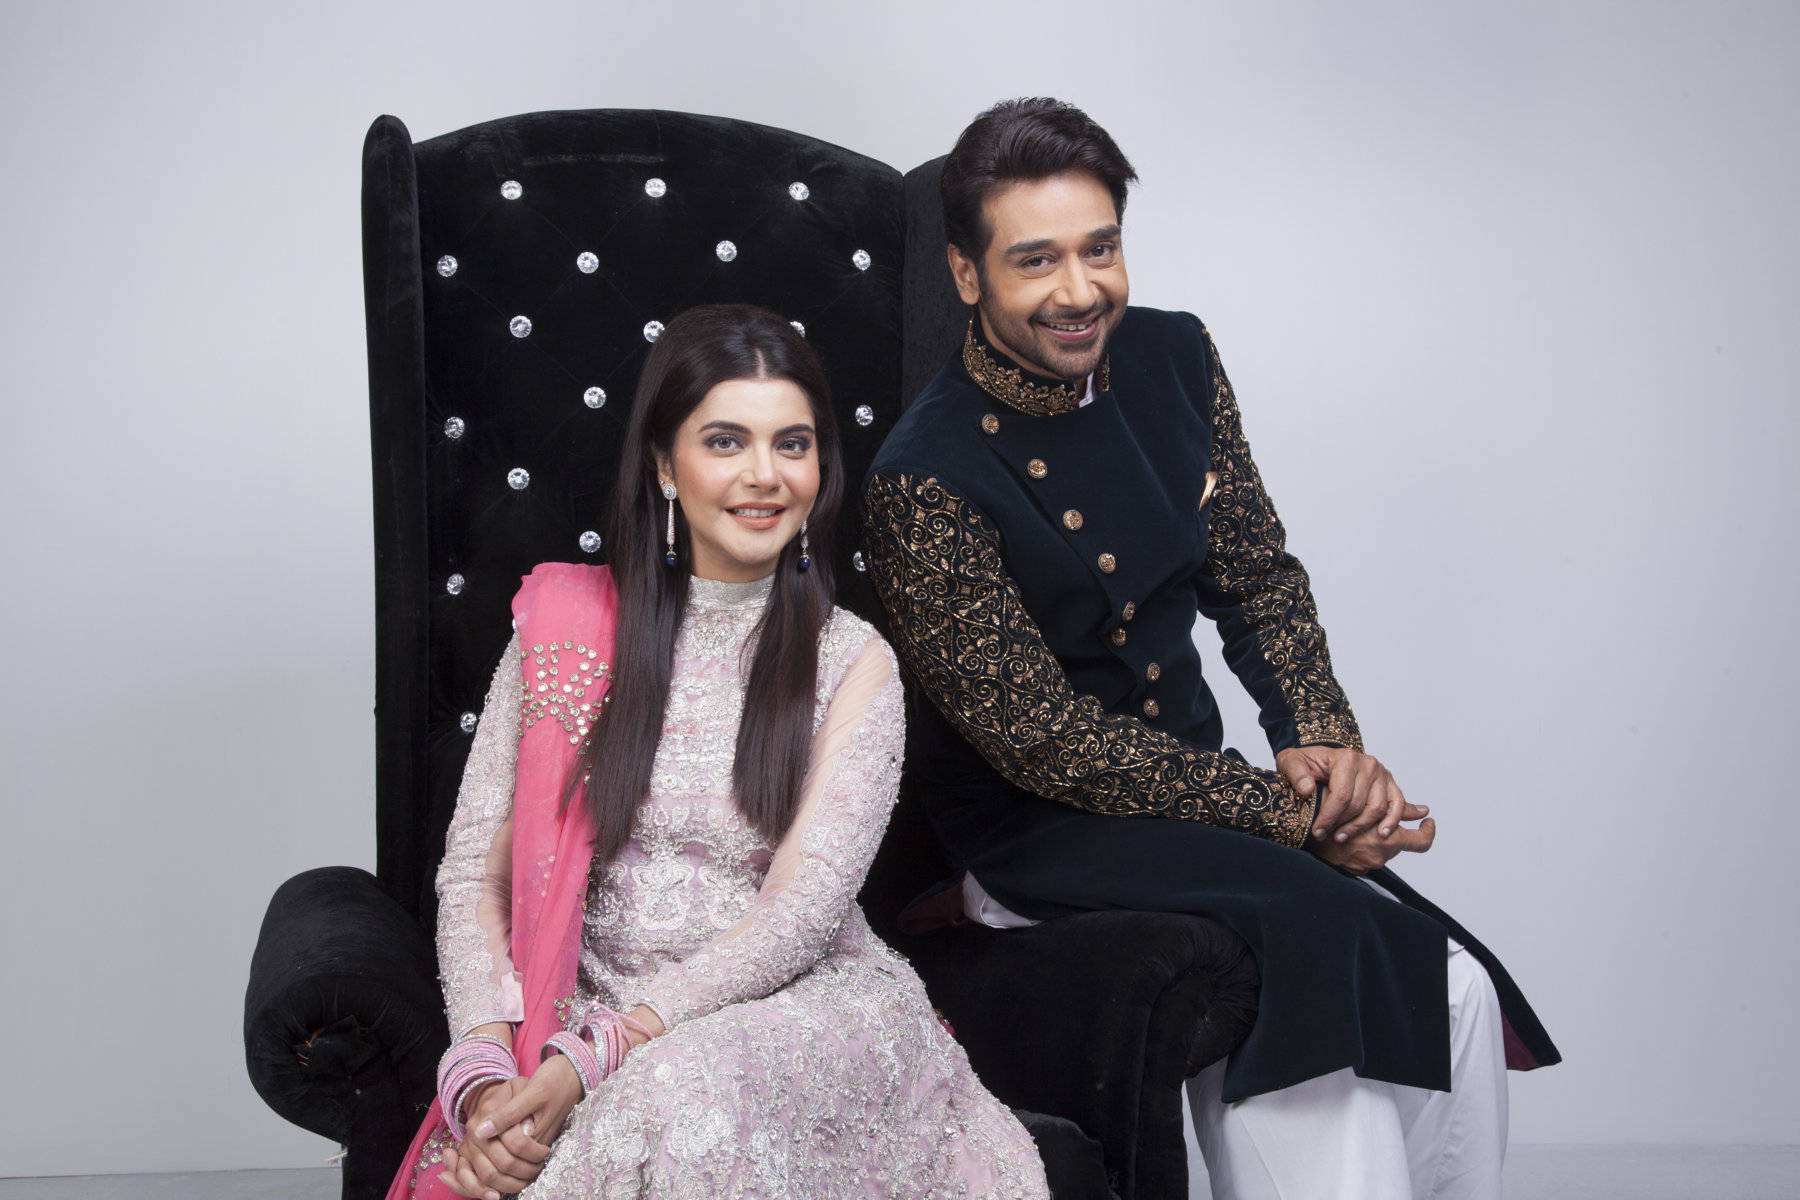 This Is Going To Be A Big Fat Desi Wedding Of Renowned Celebrity Couple That Will Celebrated On Live Television The Week Start With Their Rishta